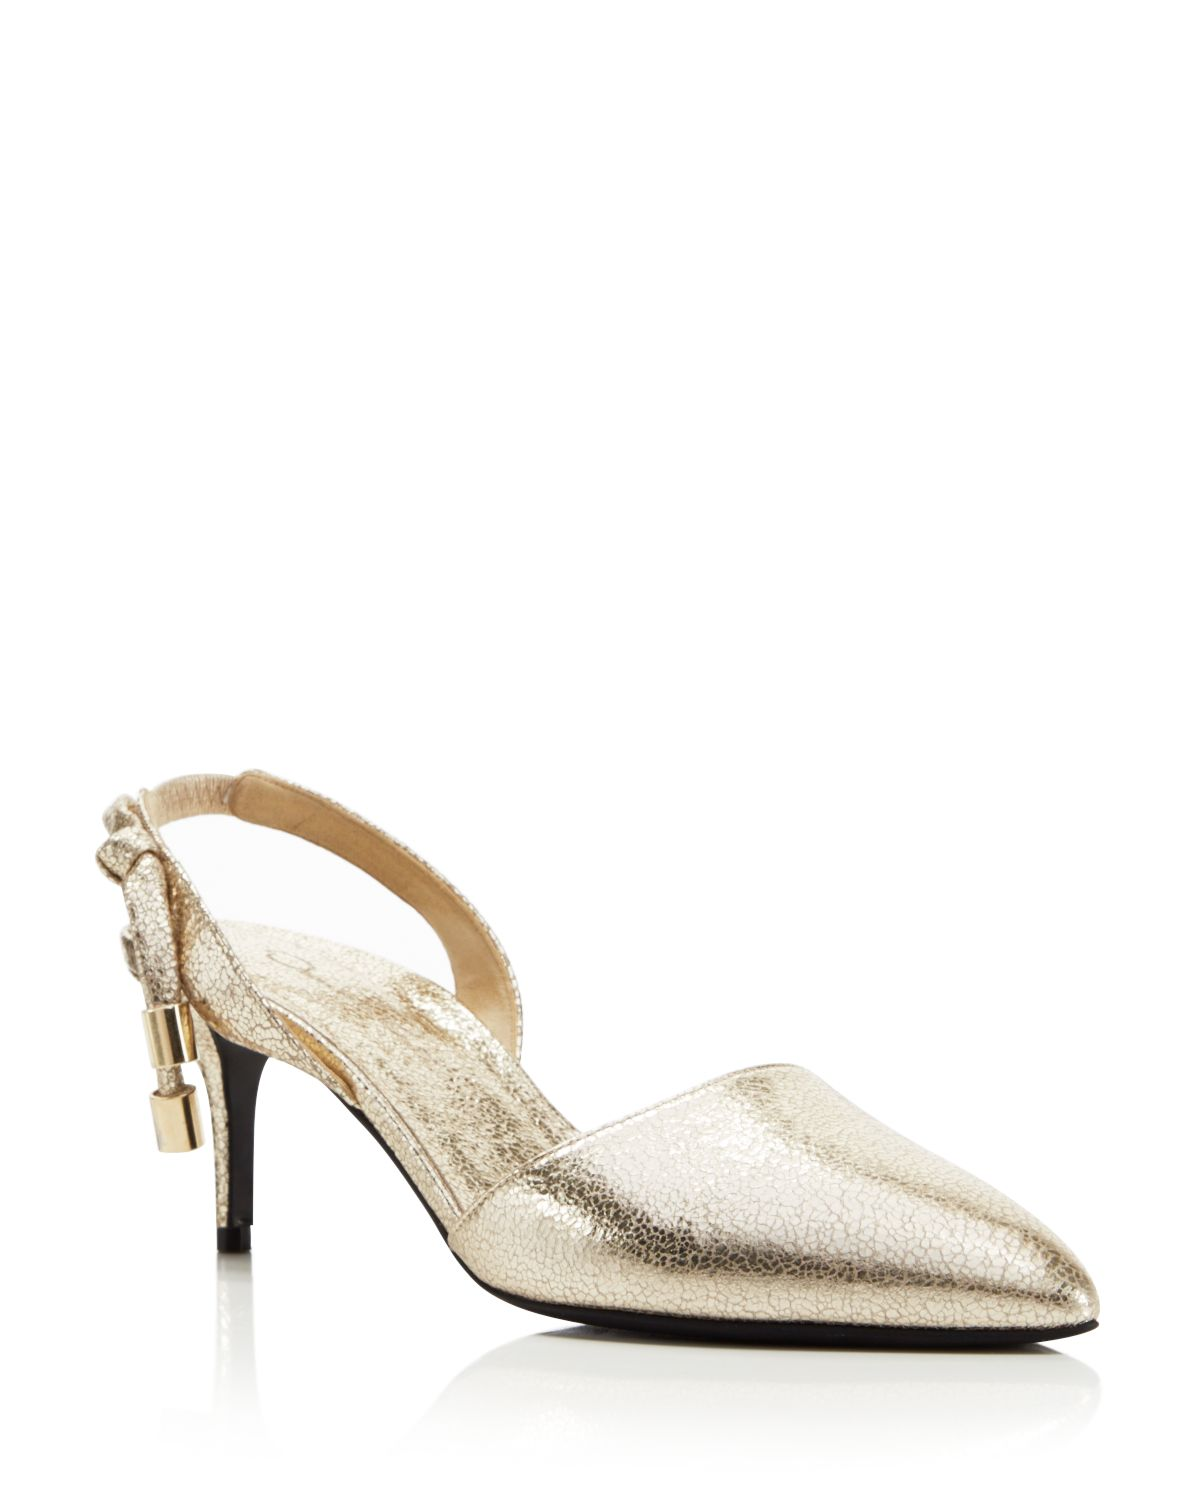 Oscar de la Renta Women's Cora Knot Metallic Leather Slingback Pumps